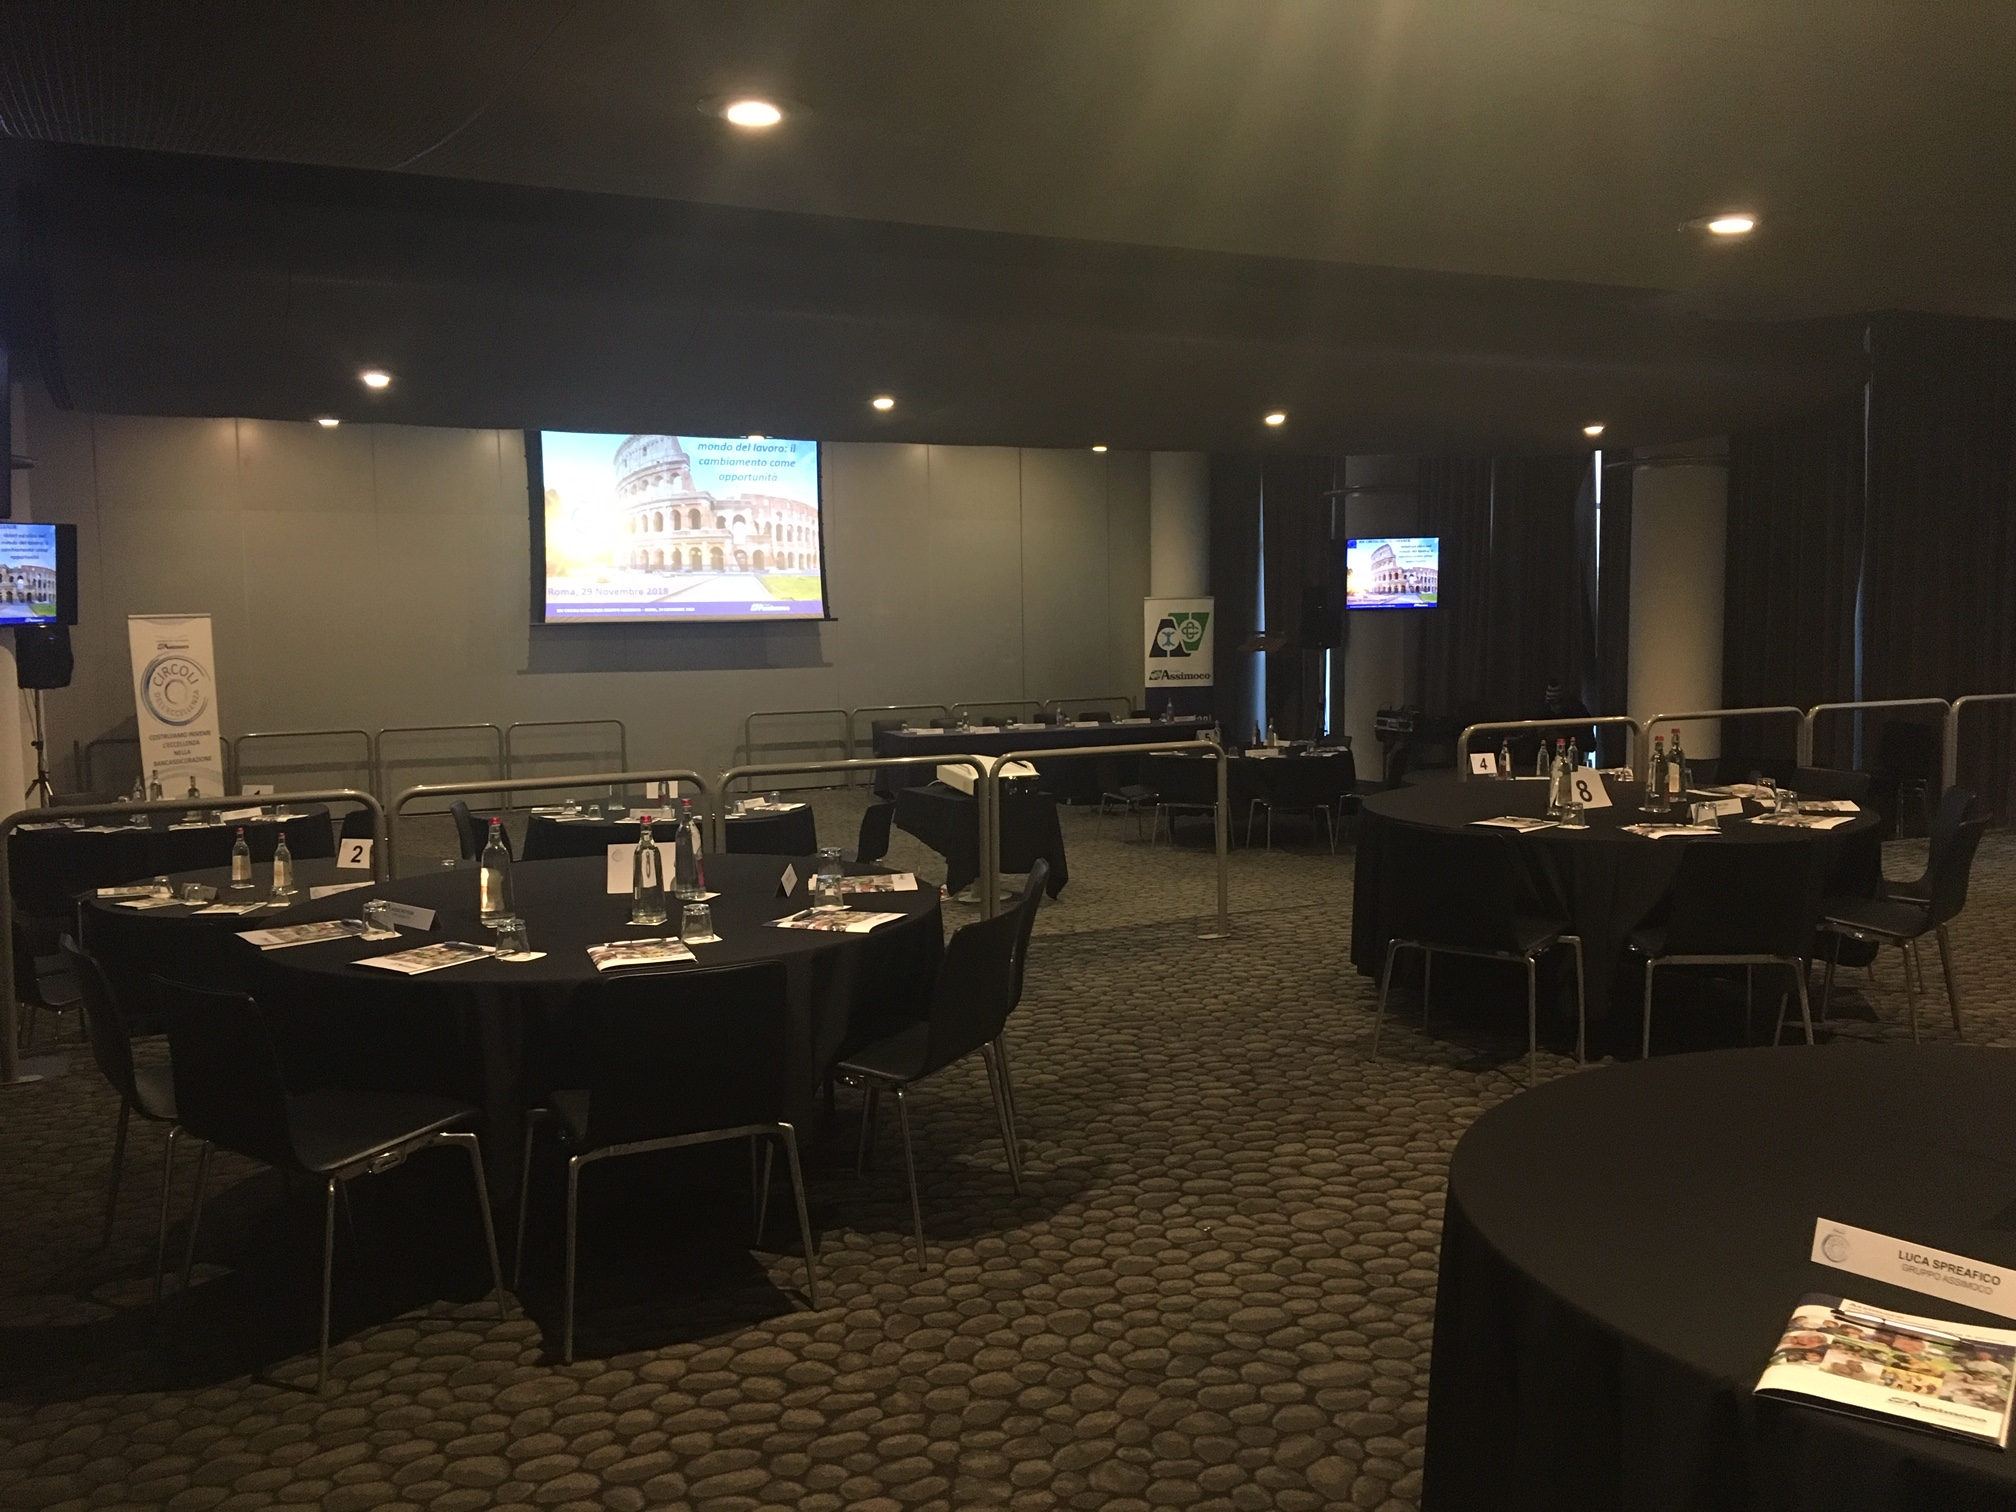 evento-assicurativo-roma-meeting-events-in-out-02